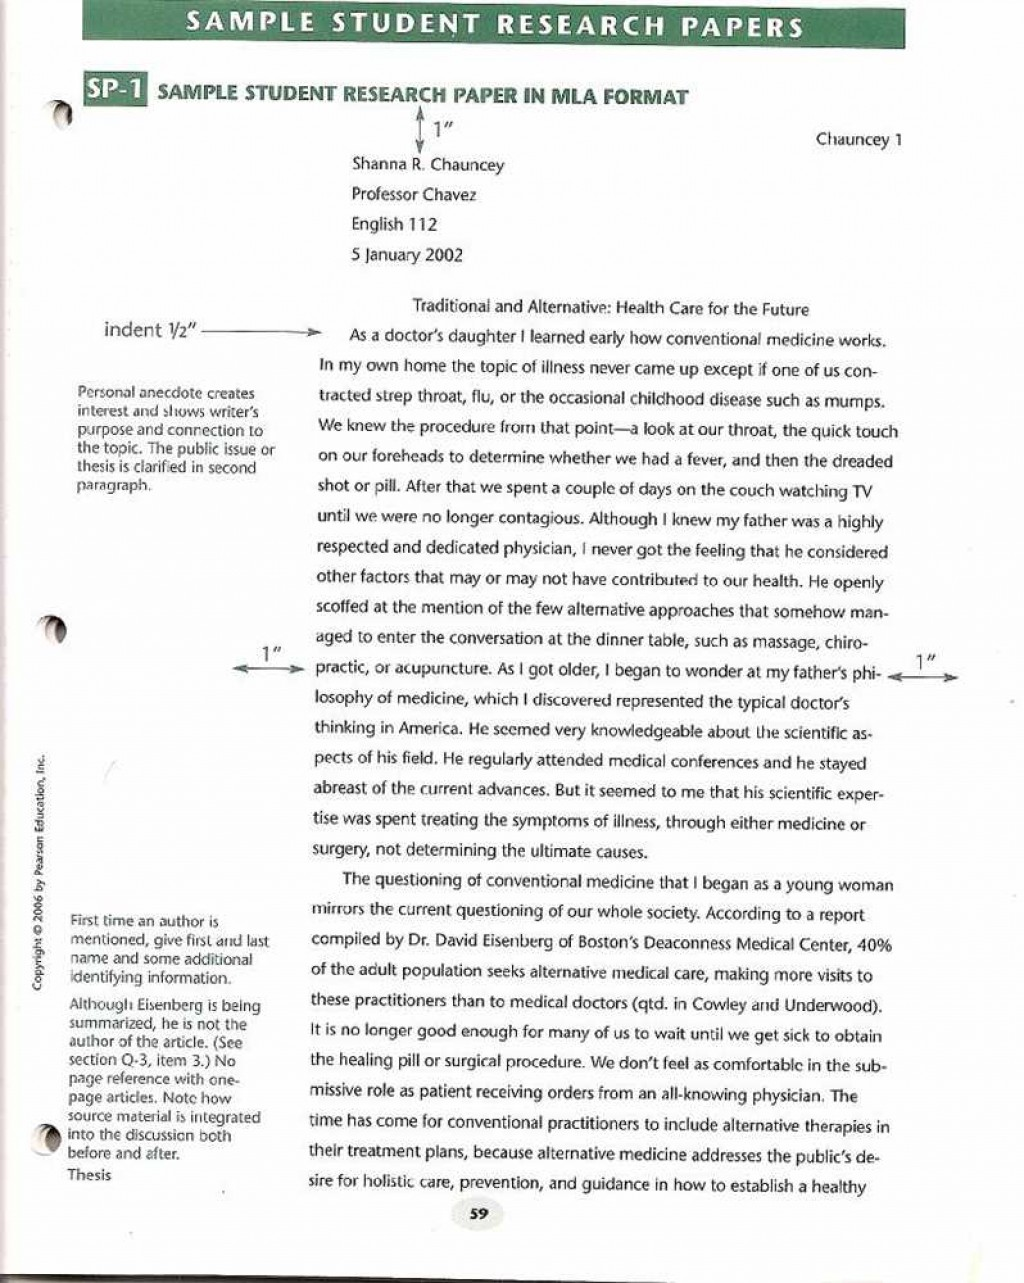 012 Research Paper Religion Online Unusual Papers Voting Free Buy Large